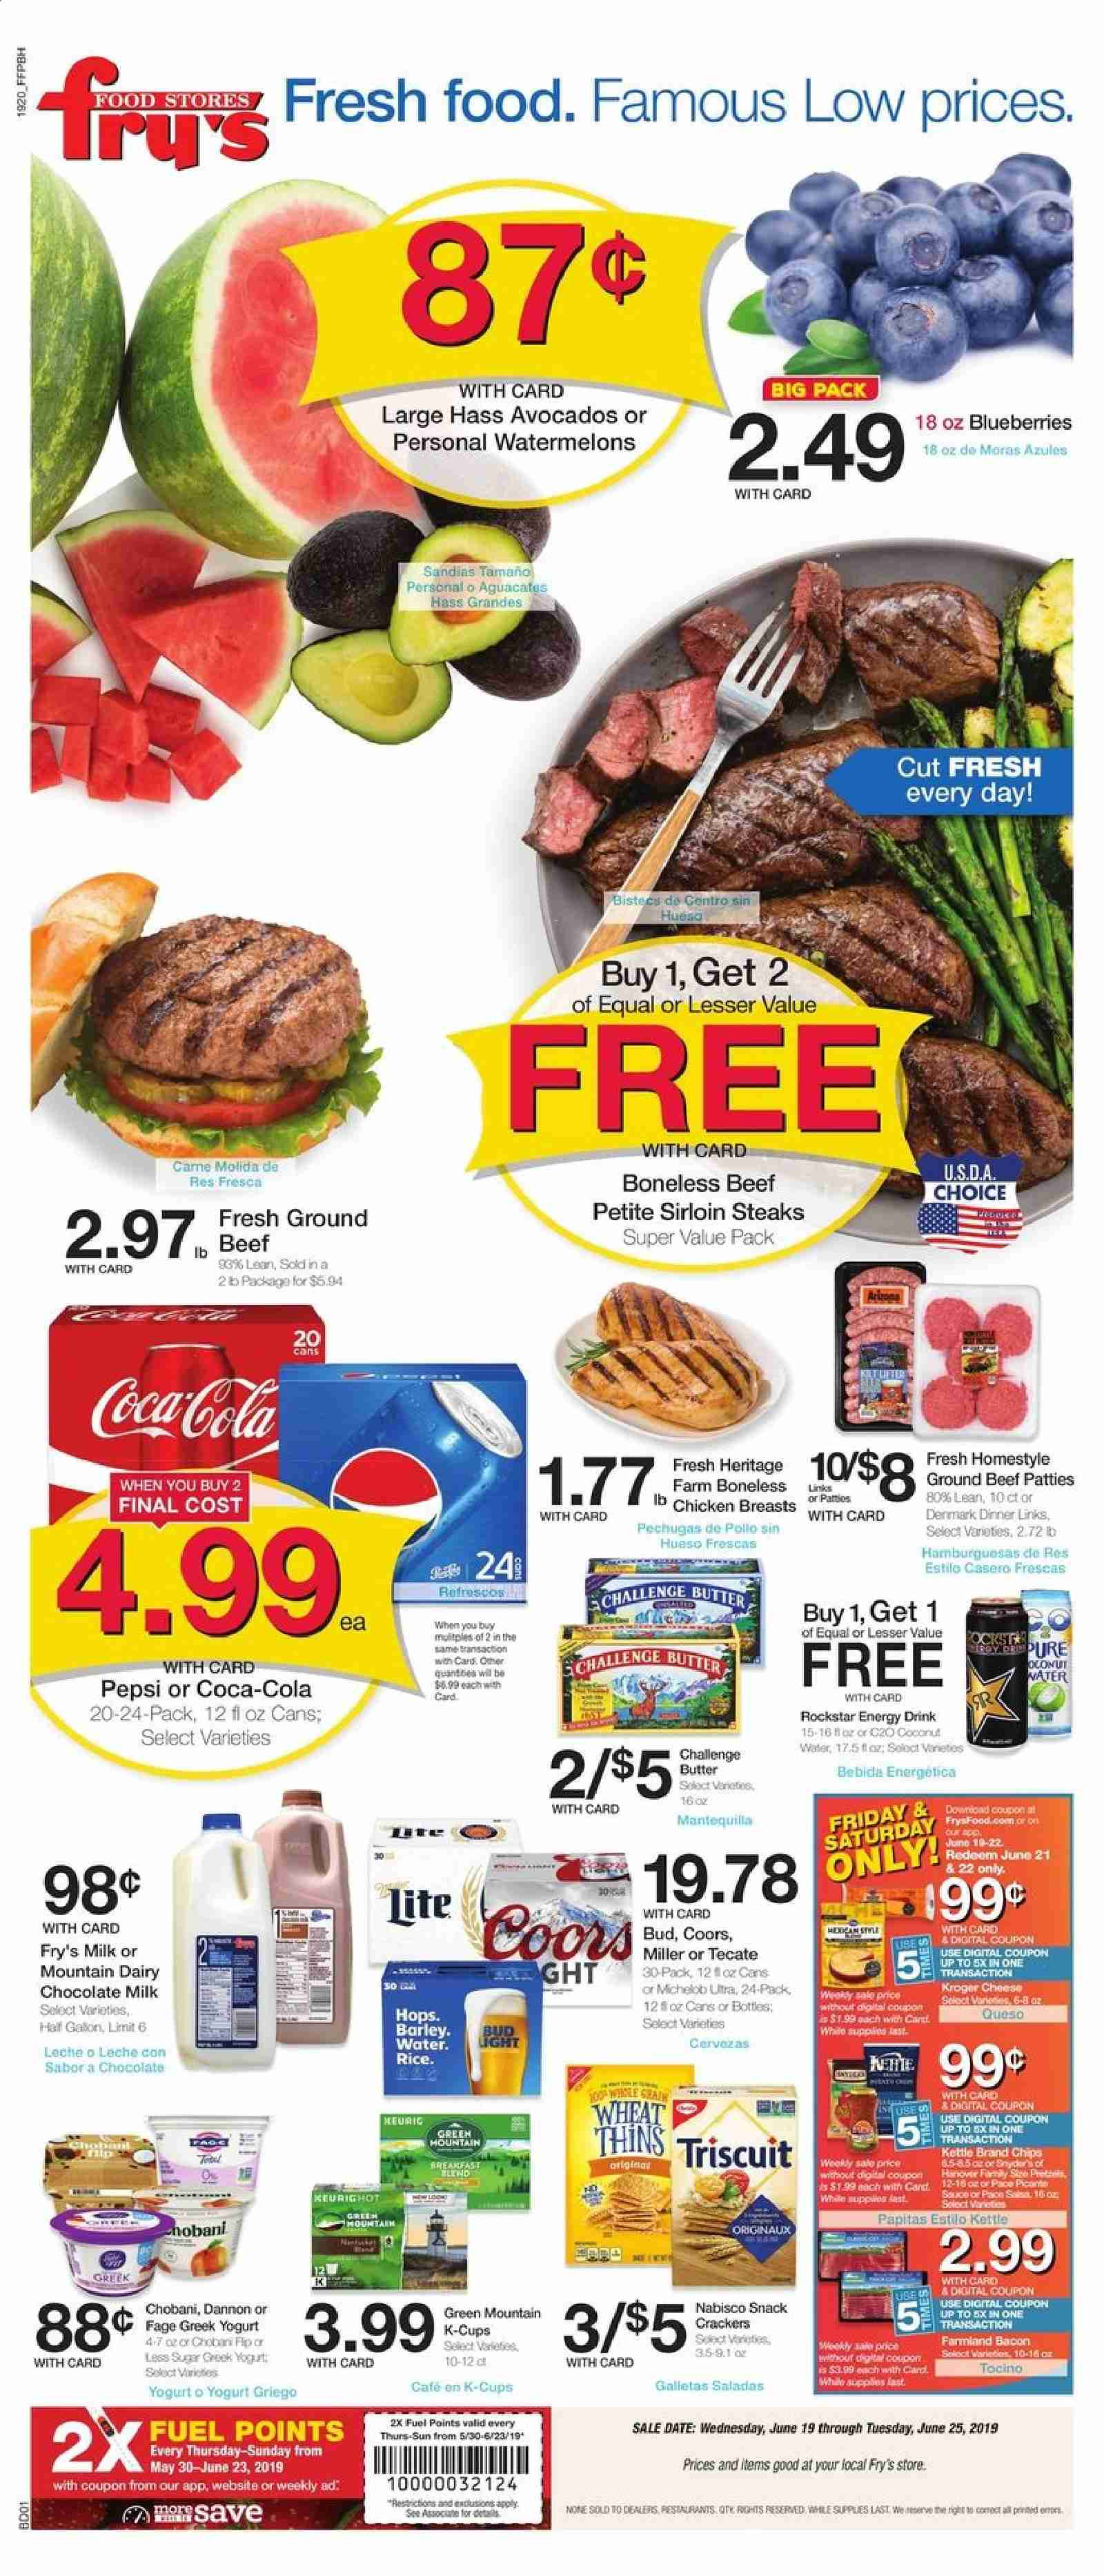 Fry's Flyer - 06.19.2019 - 06.25.2019 - Sales products - Coors, Michelob, avocado, blueberries, bacon, cheese, greek yogurt, milk, chocolate milk, butter, chocolate, cracker, crackers, chips, snack, barley, rice, Coca-Cola, Pepsi, energy drink, water, chicken, chicken breast, beef meat, ground beef, Cars, kettle. Page 1.